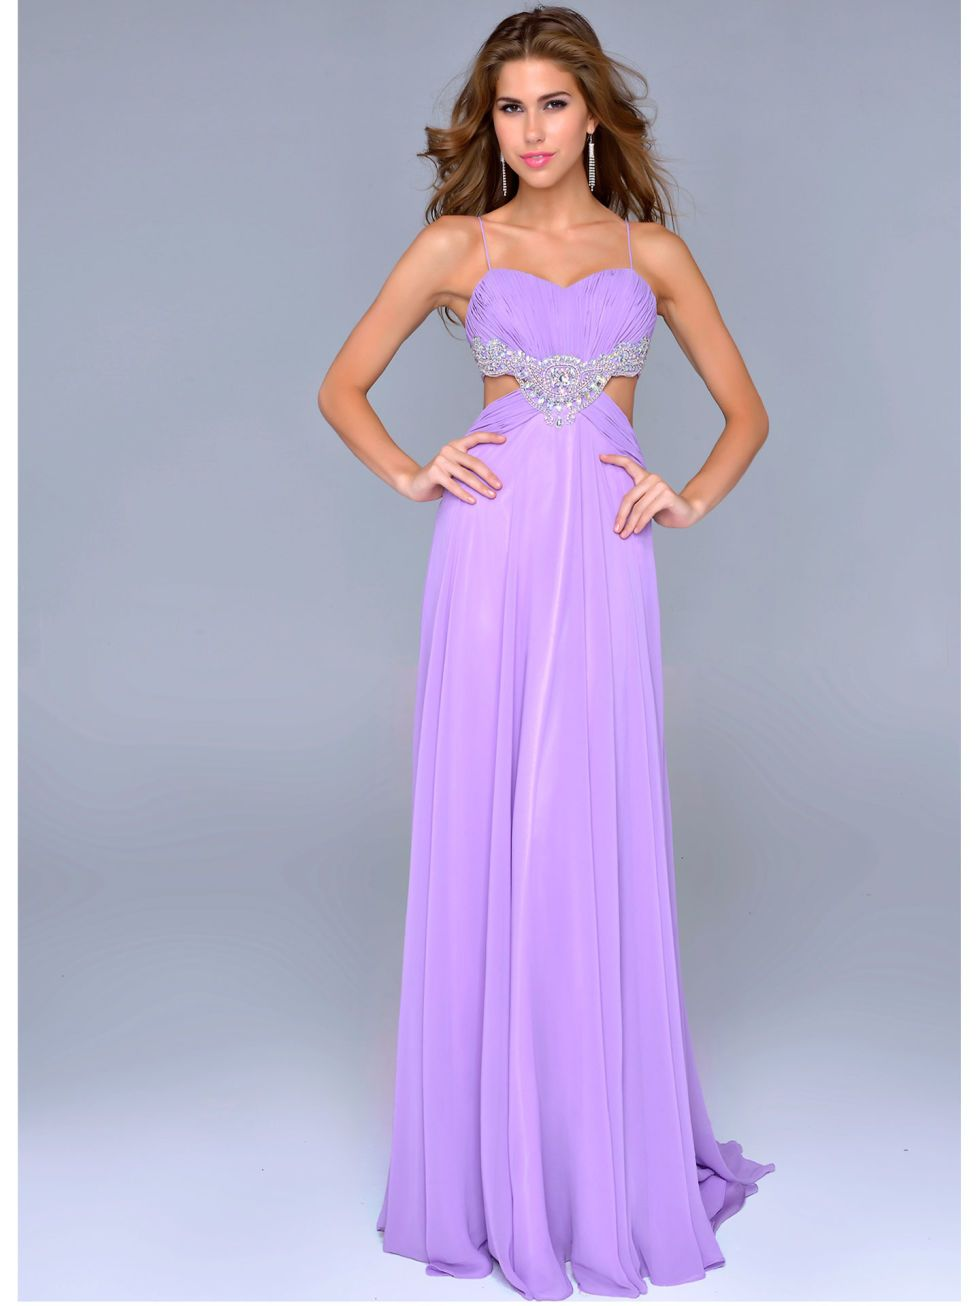 purple prom dresses with straps | 30 Best Purple Prom Dresses 2016 ...